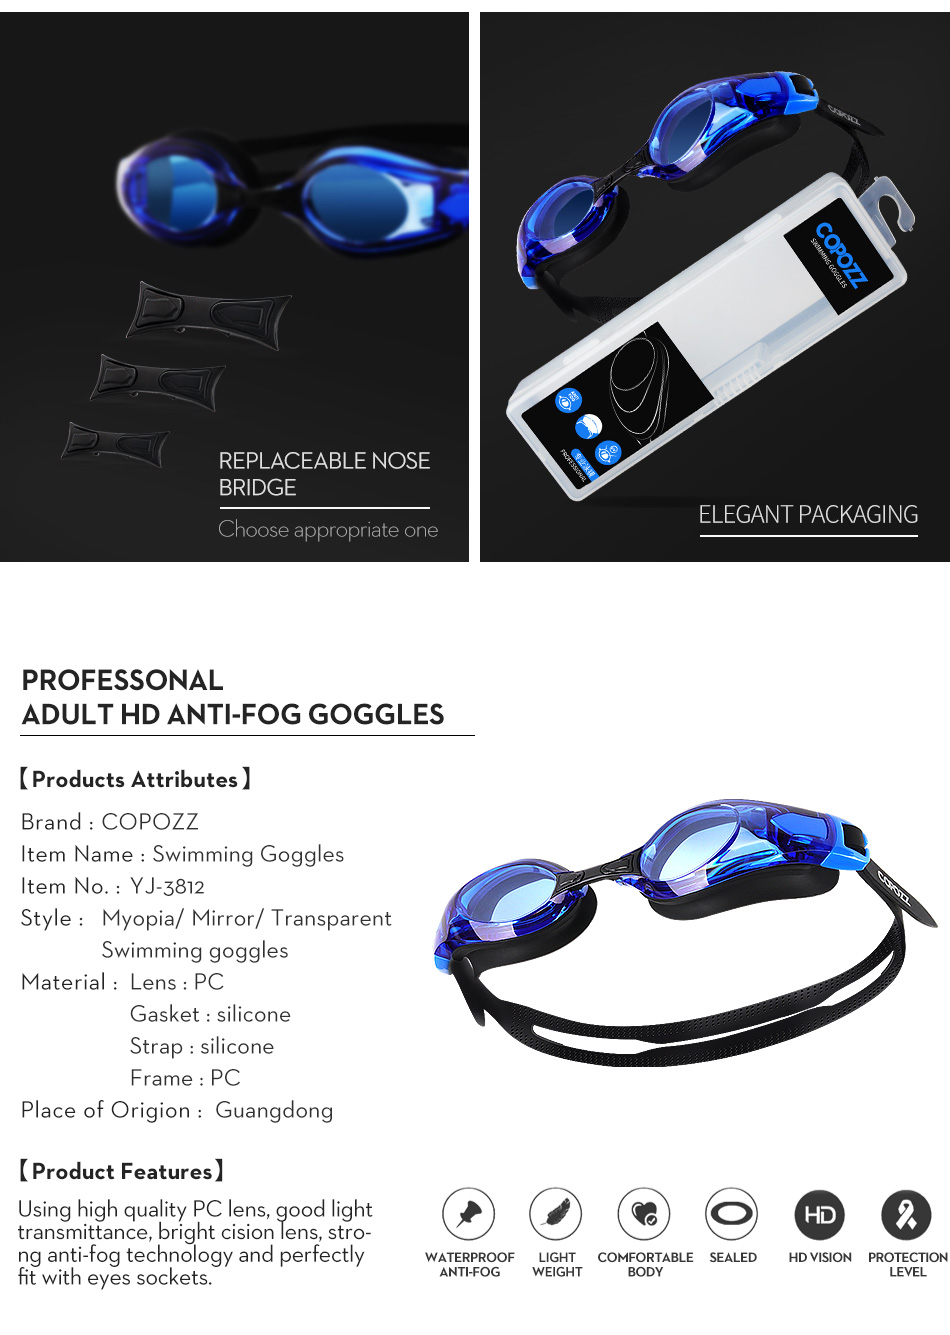 COPOZZ Myopia Pro Diopter Swimming Goggles 0 -1.5 to -8 With Double Anti Fog UV Protection 14